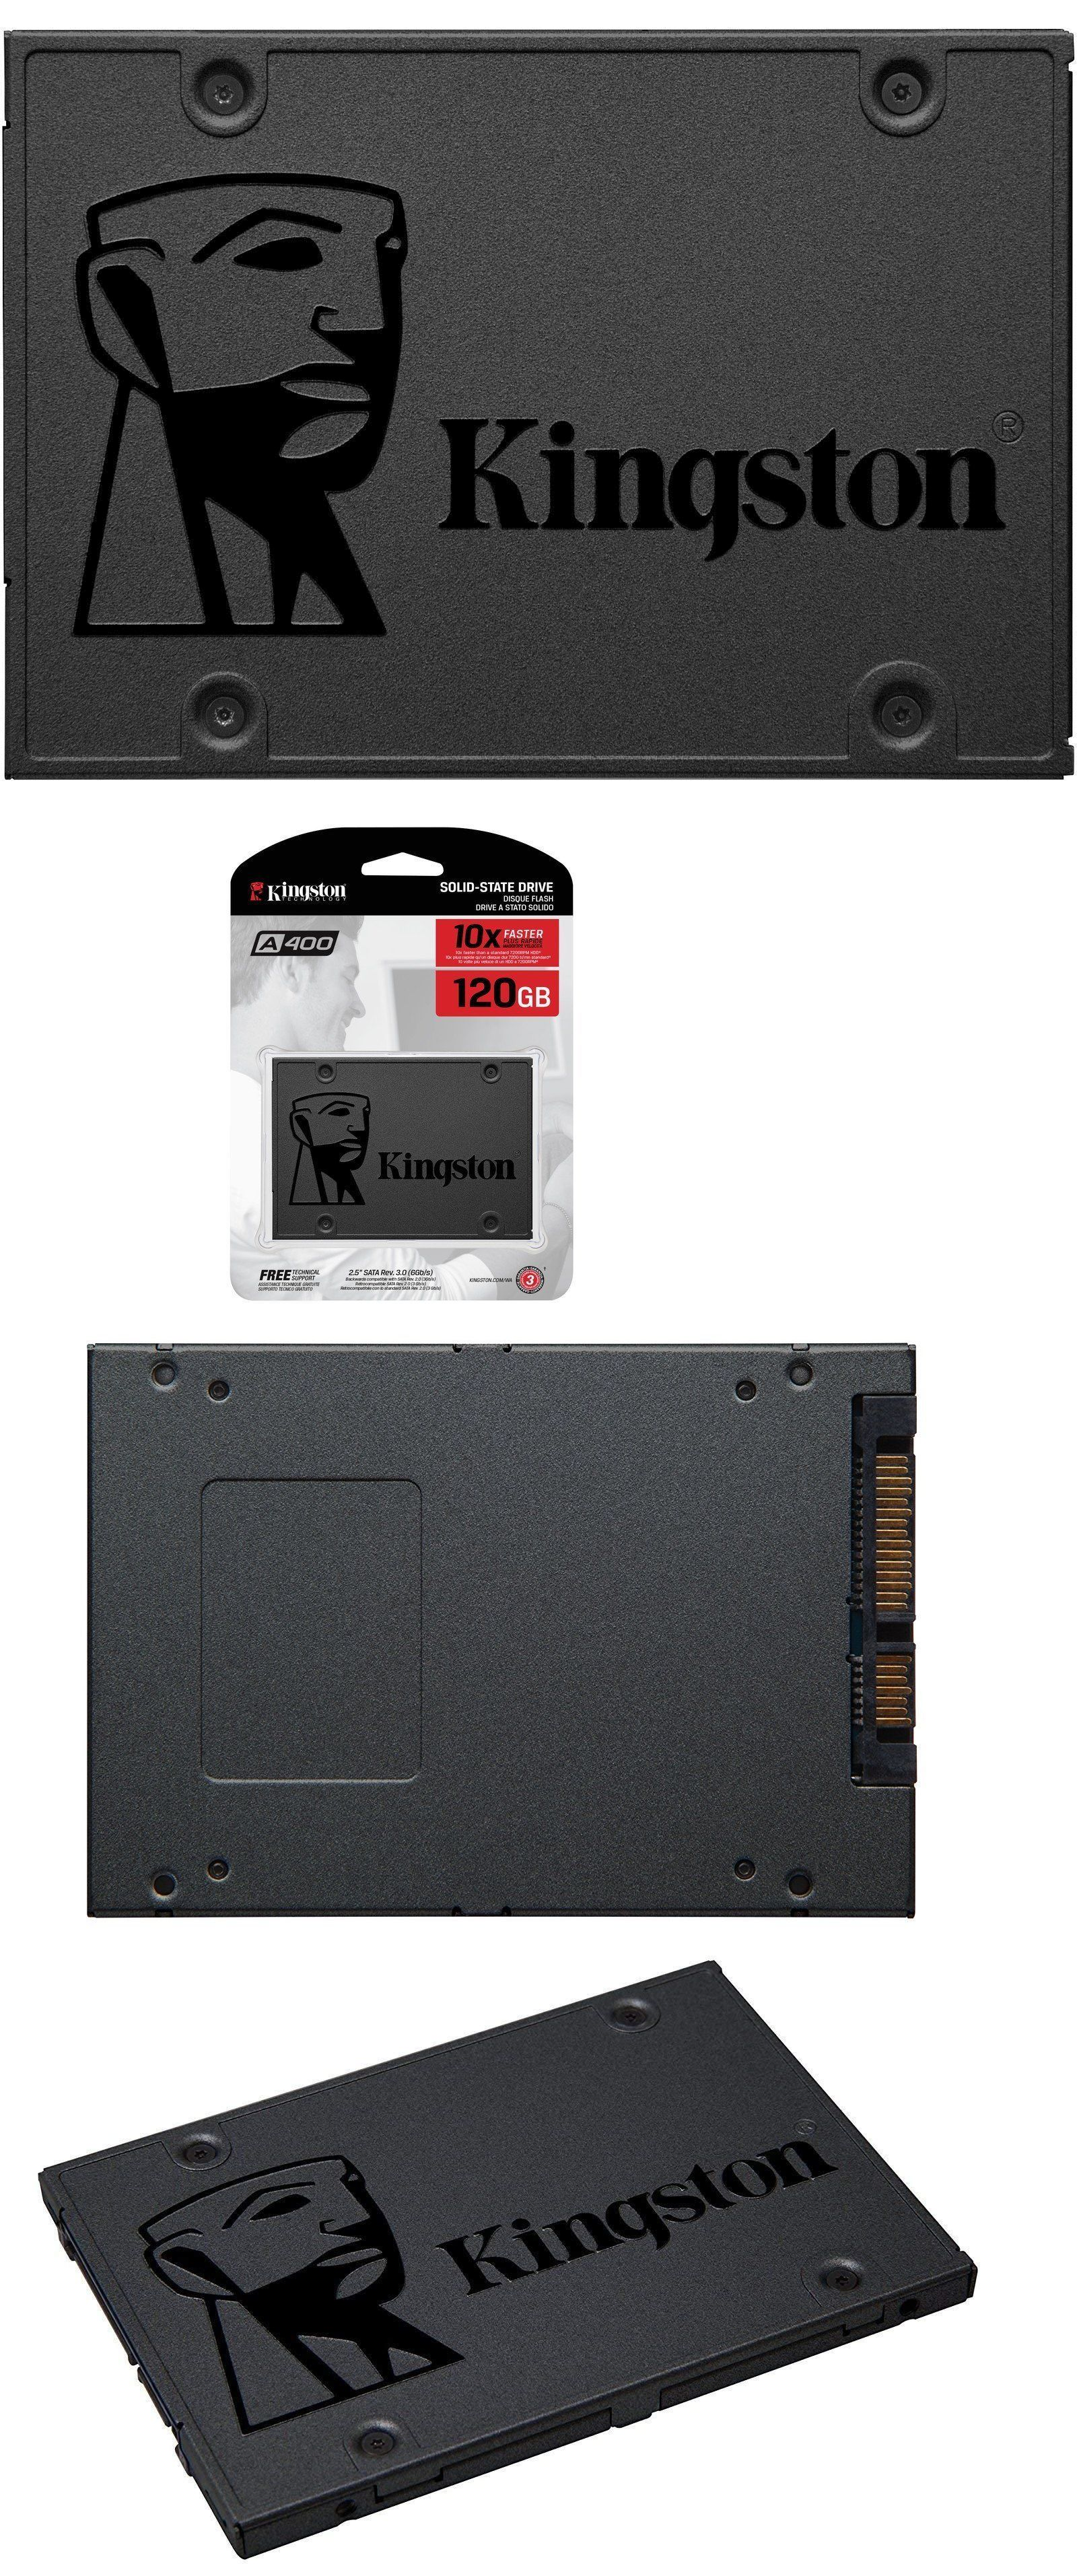 Solid State Drives 175669 120gb Kingston A400 Ssd Sata Iii 2 5 Internal Solid State Drive Sa400s37 120gb Buy It Now Only 28 49 On Eb Driving Ebay Solid